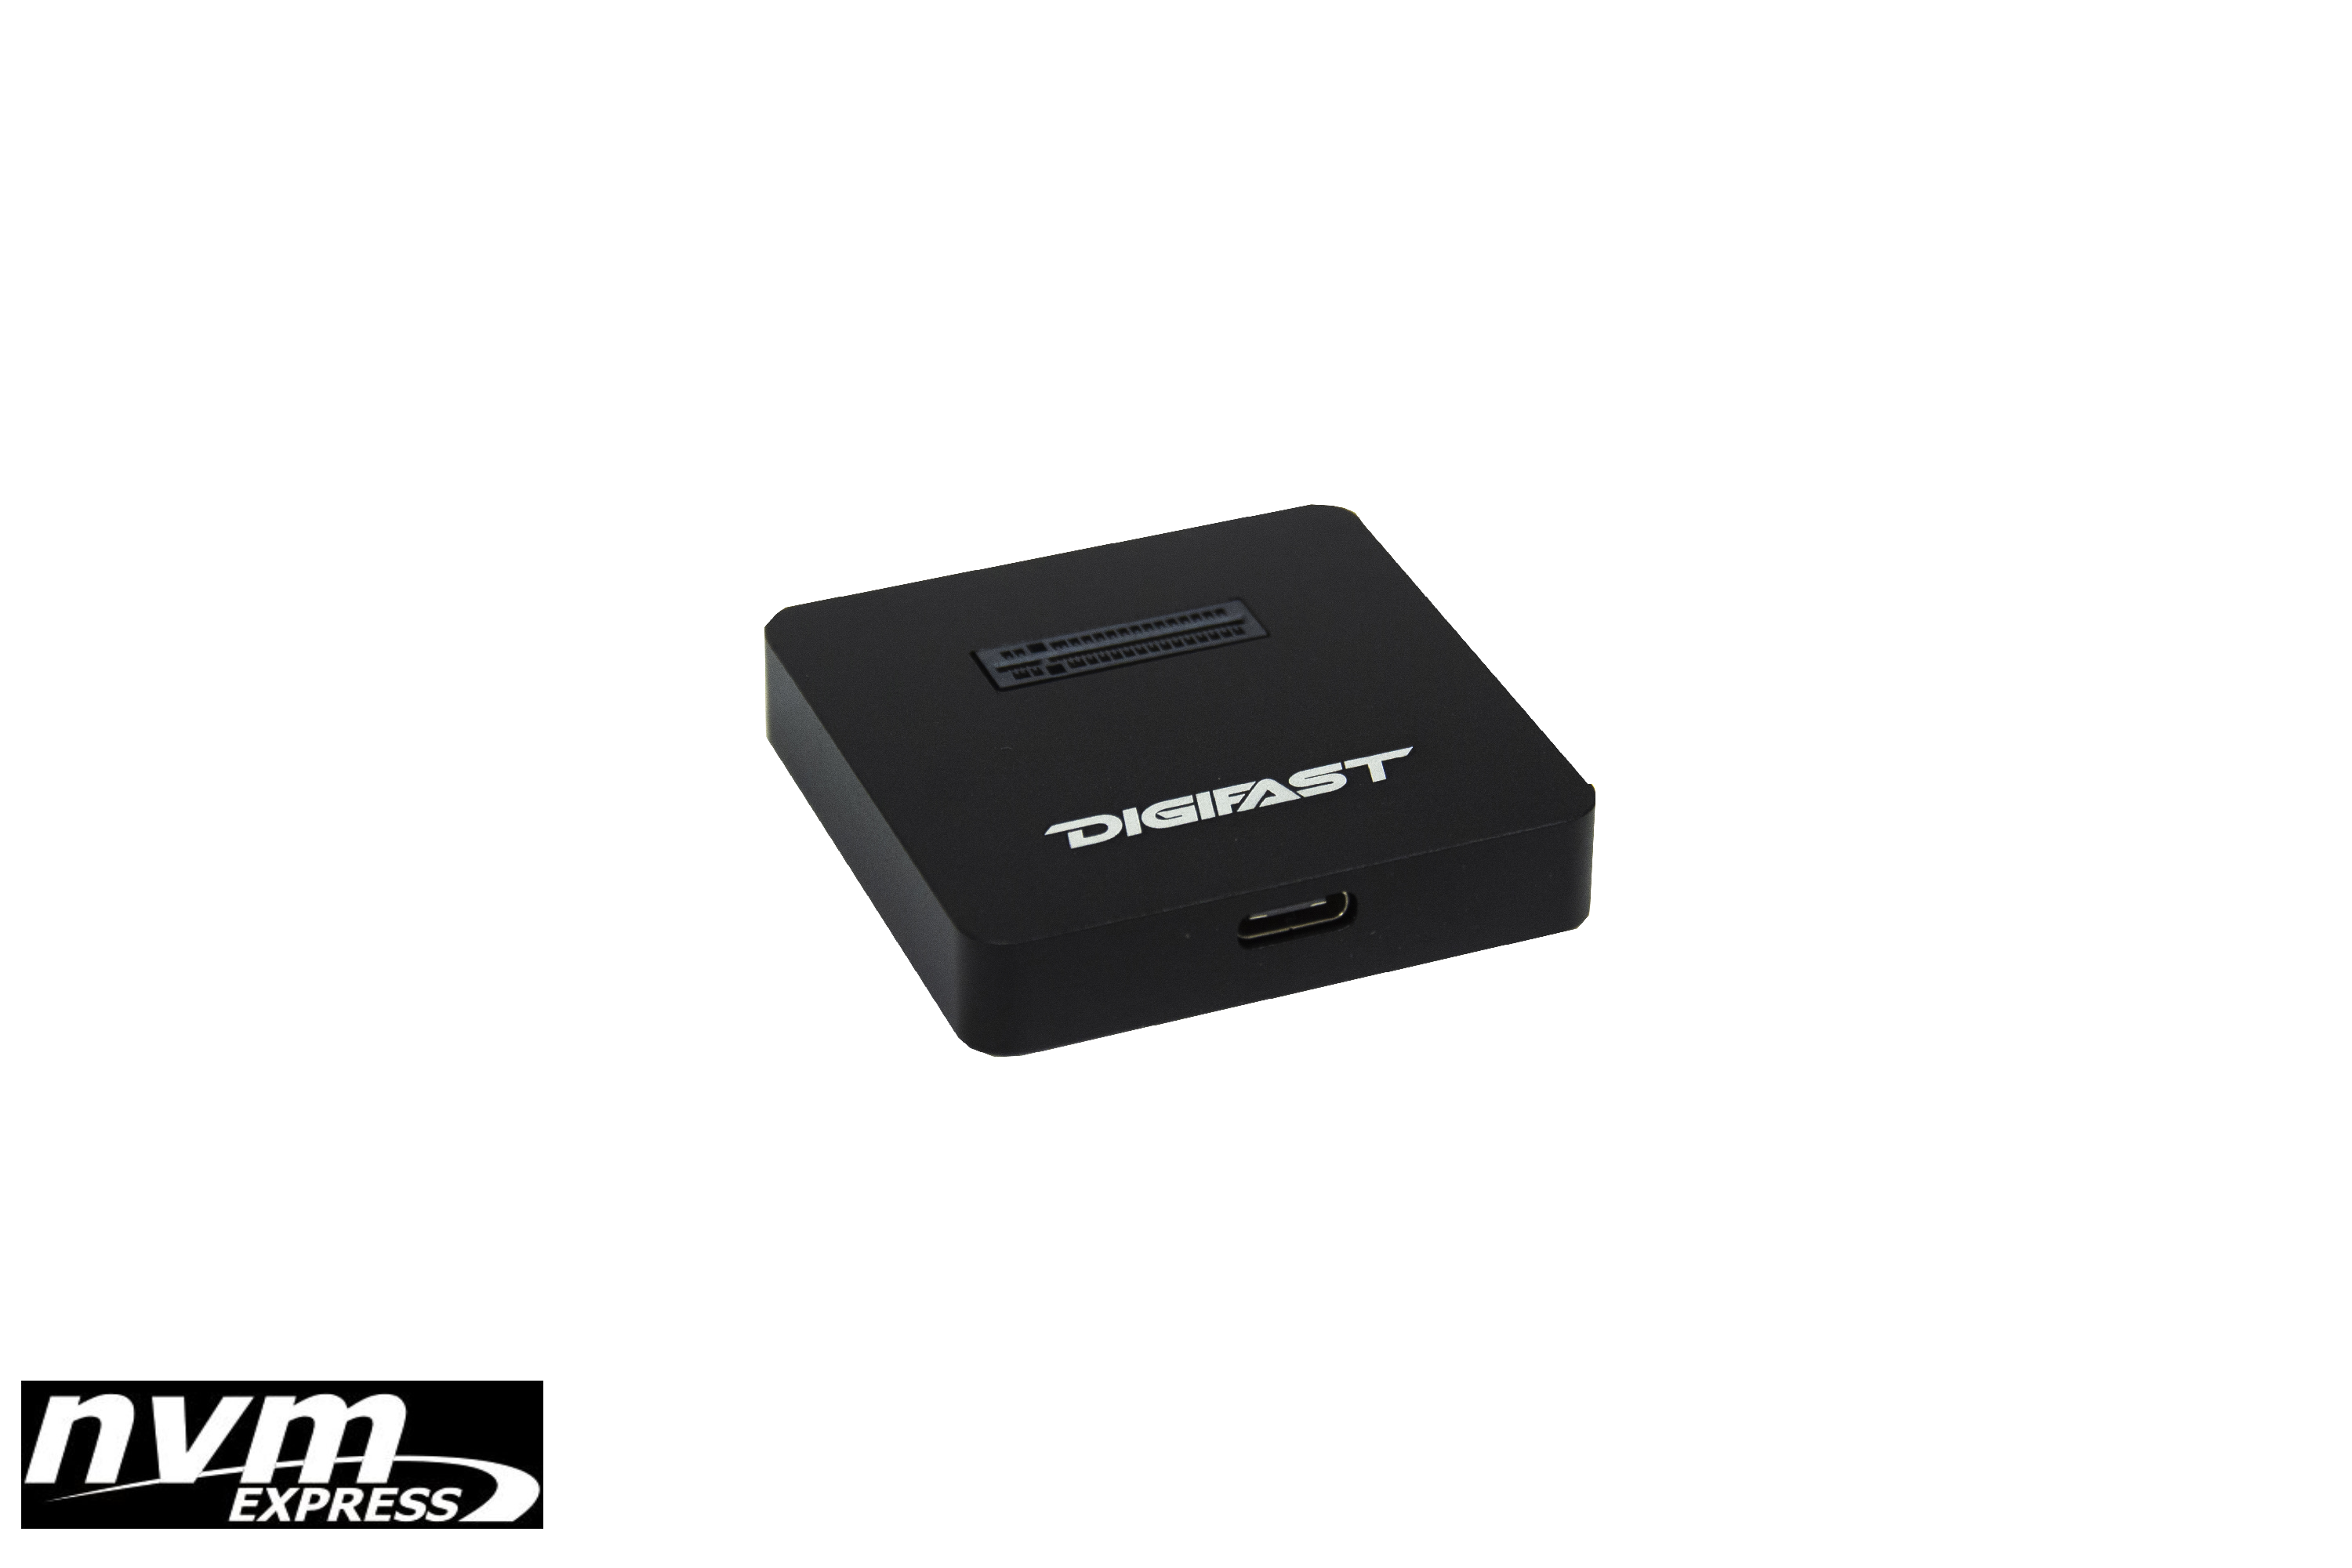 M.2 Docking Base - Digifast M.2 NVMe SSD Docking Base - Black